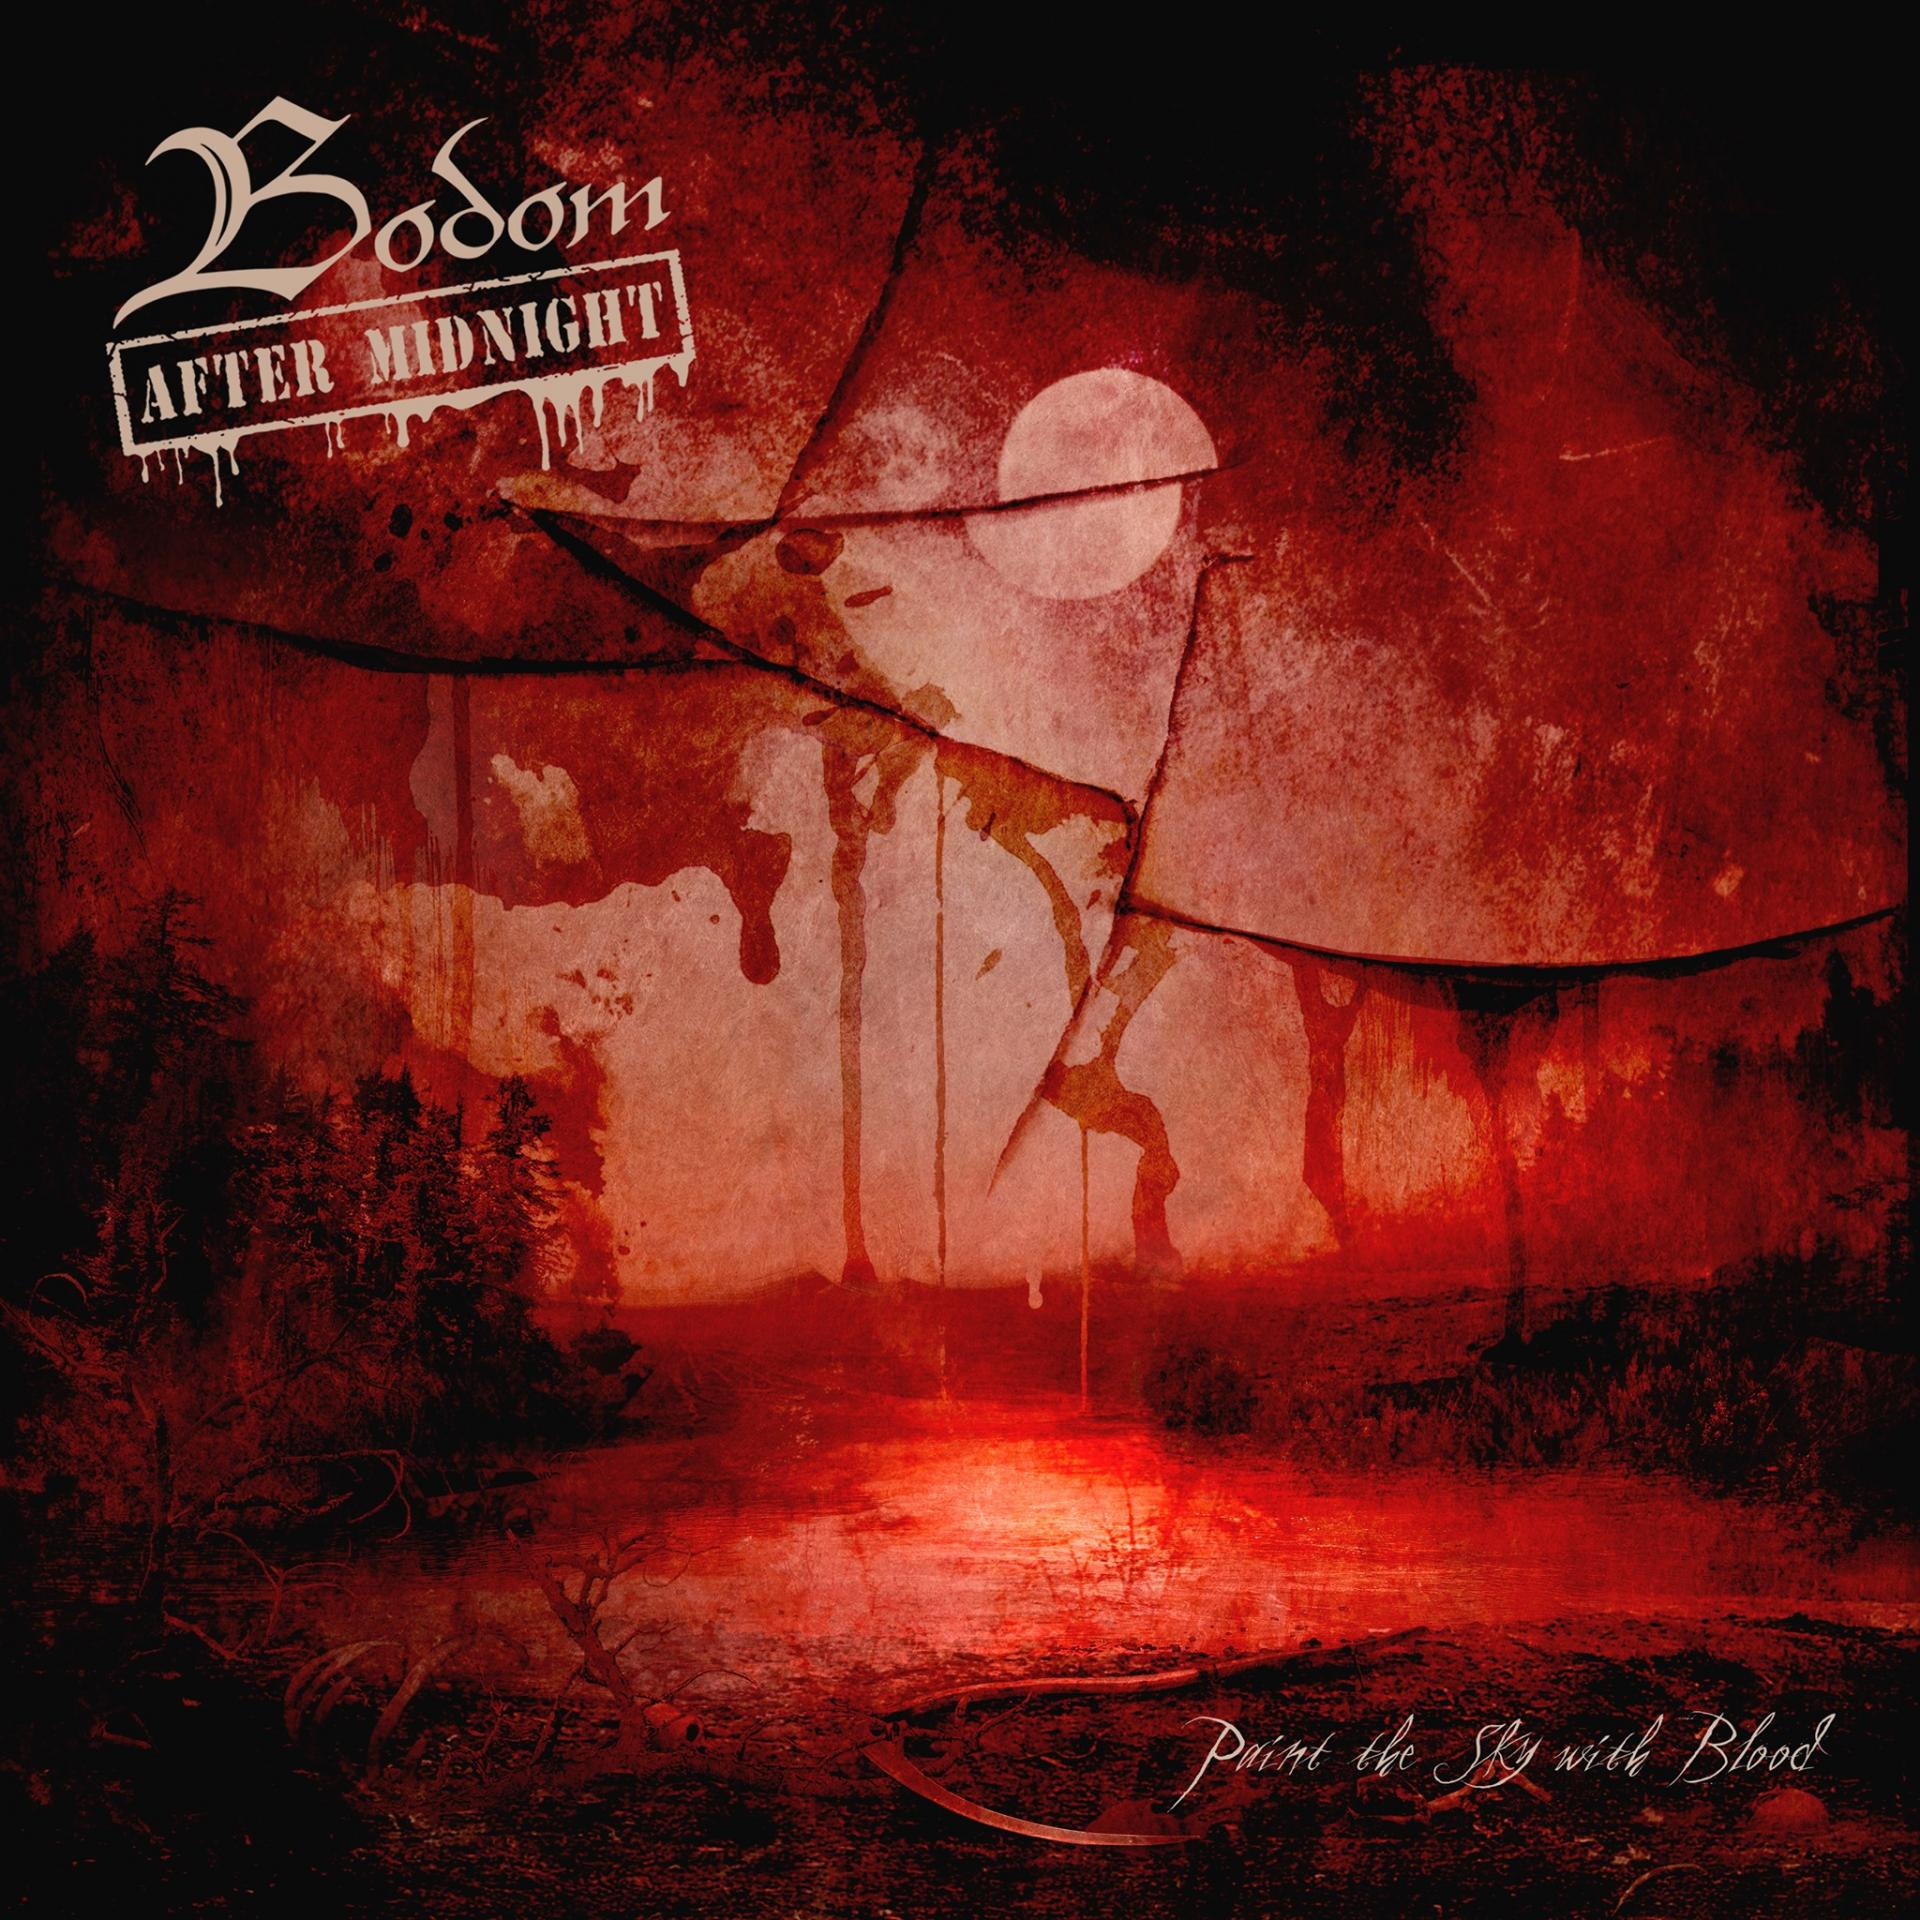 Bam paint the sky with blood 1